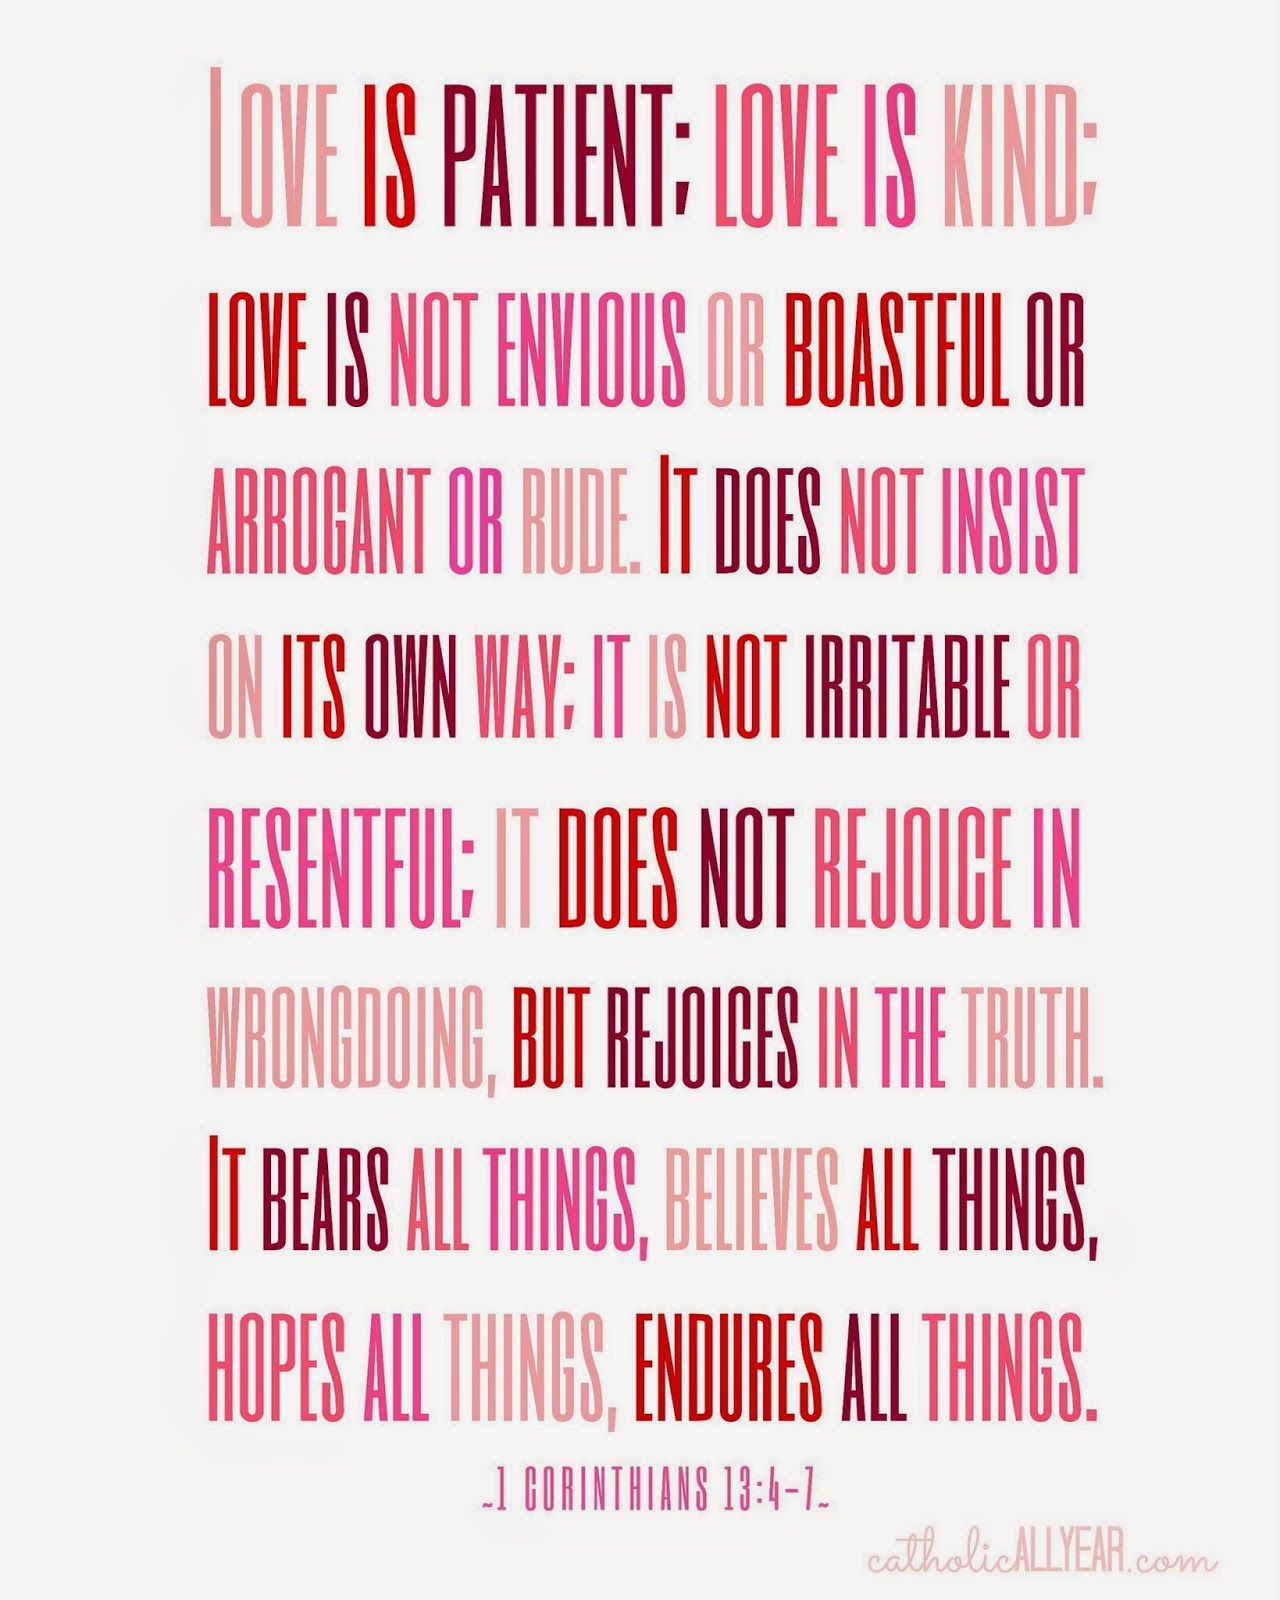 "Catholic All Year: Seven Free Printable Catholic Valentines ""love Is - Love Is Patient Love Is Kind Free Printable"